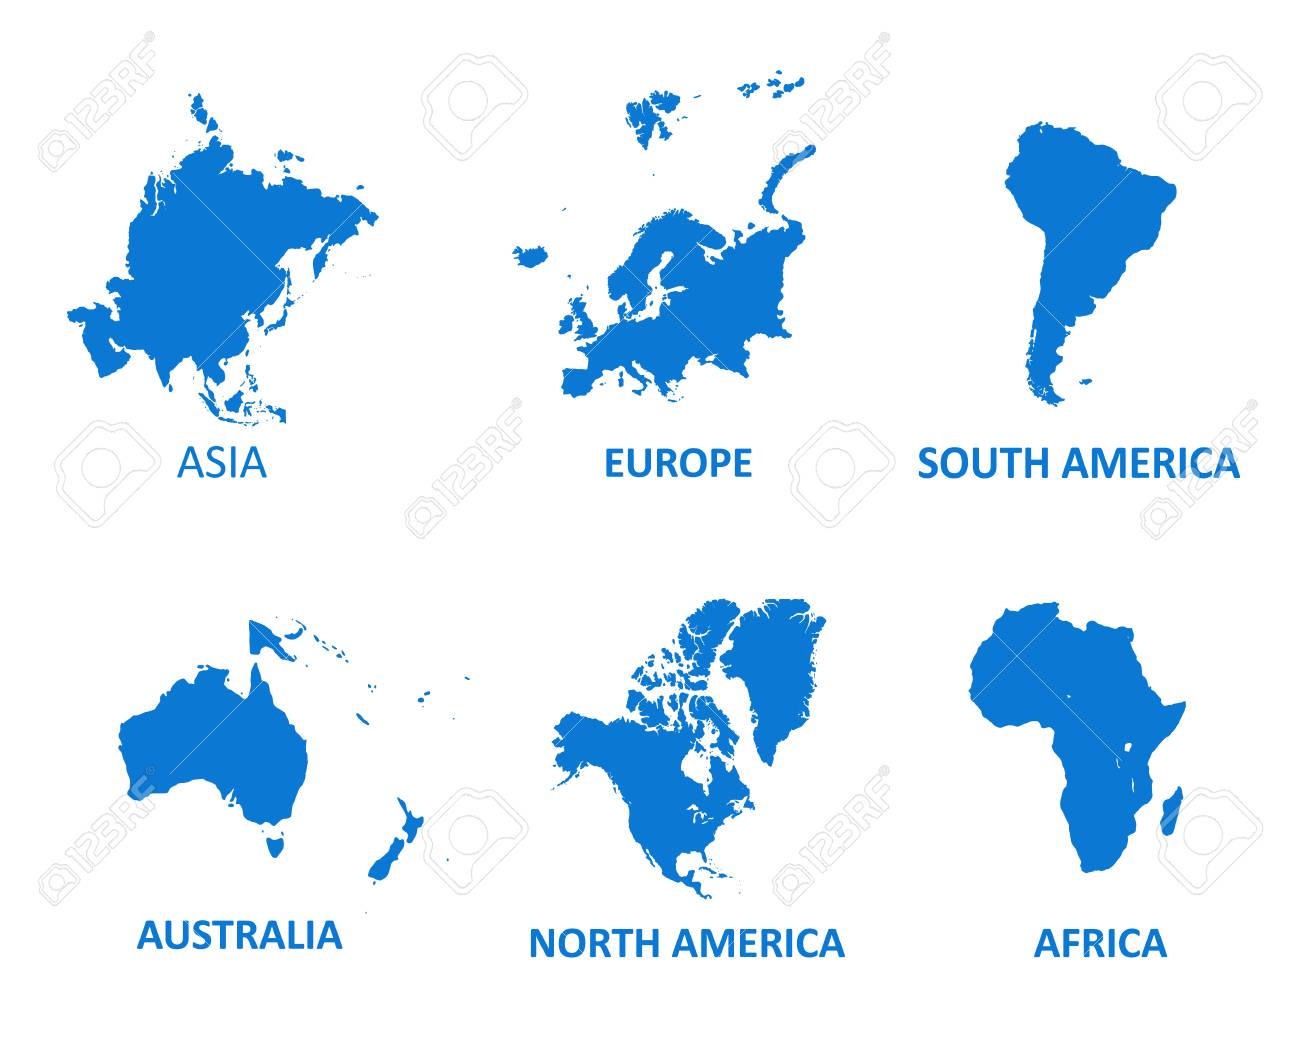 Picture of: World Continents Vector Map Vector Illustration On White Background Royalty Free Cliparts Vectors And Stock Illustration Image 113151973